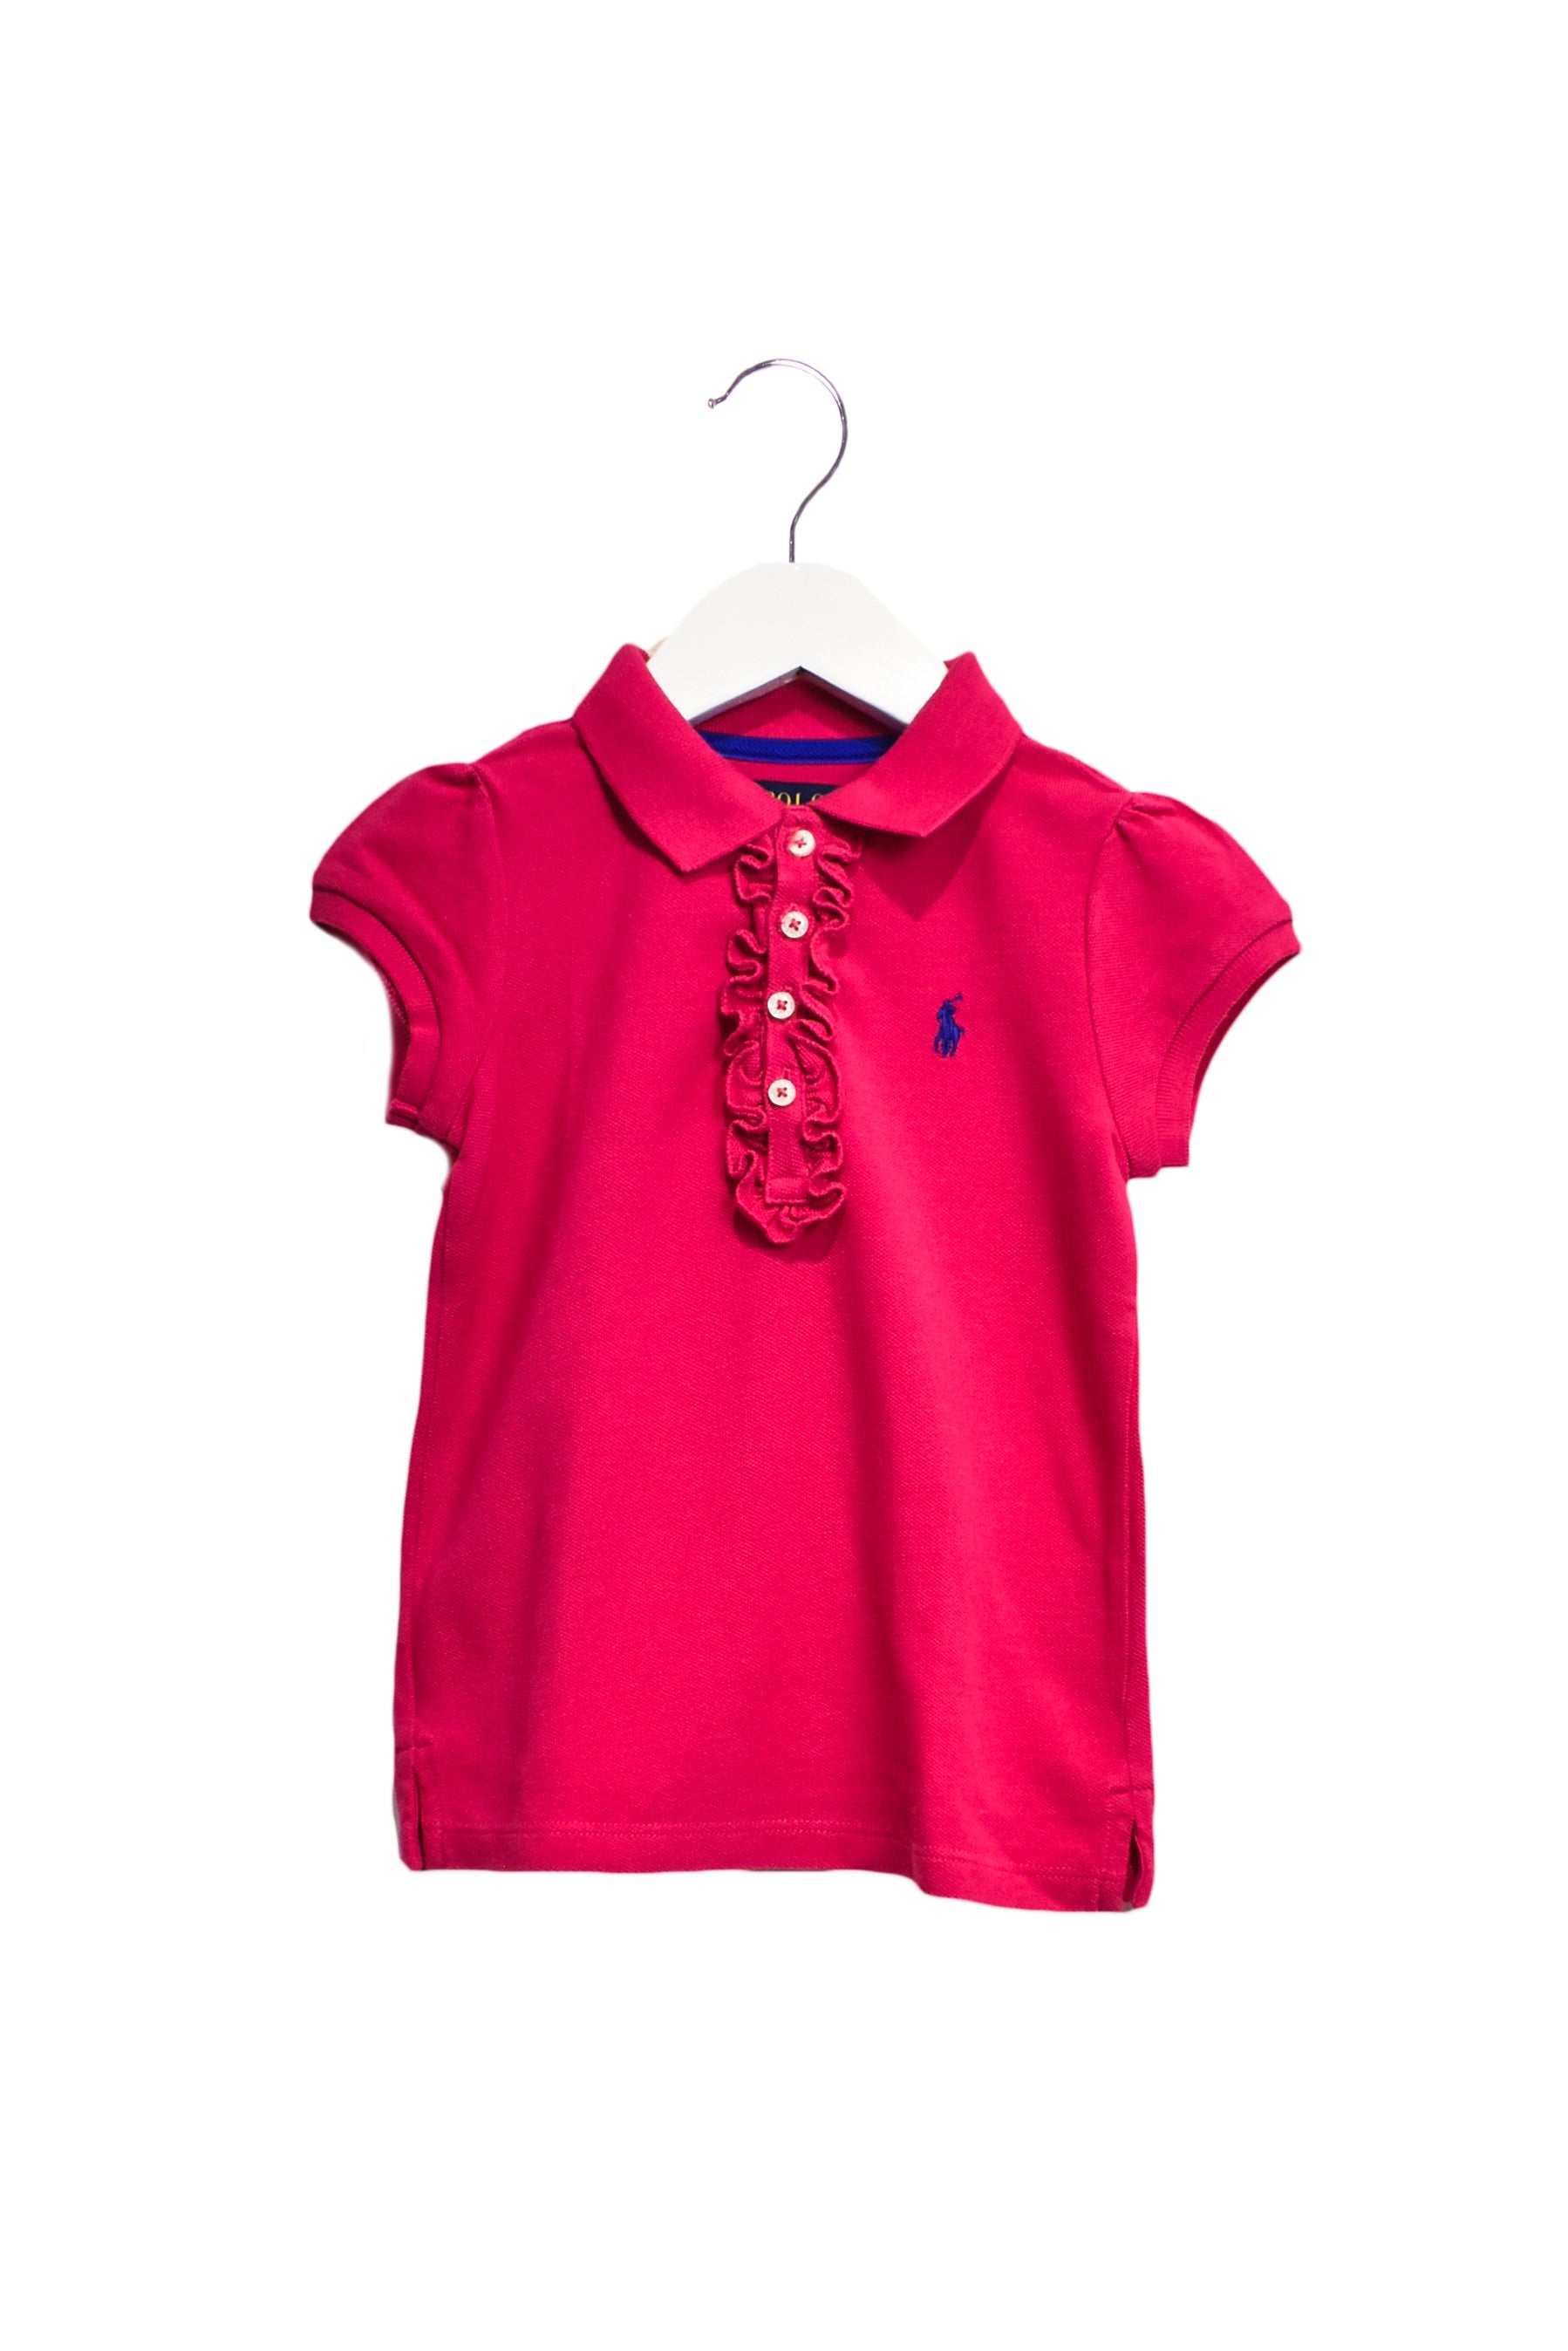 38e7be9bc 10021425 Polo Ralph Lauren Kids~Polo 4T at Retykle